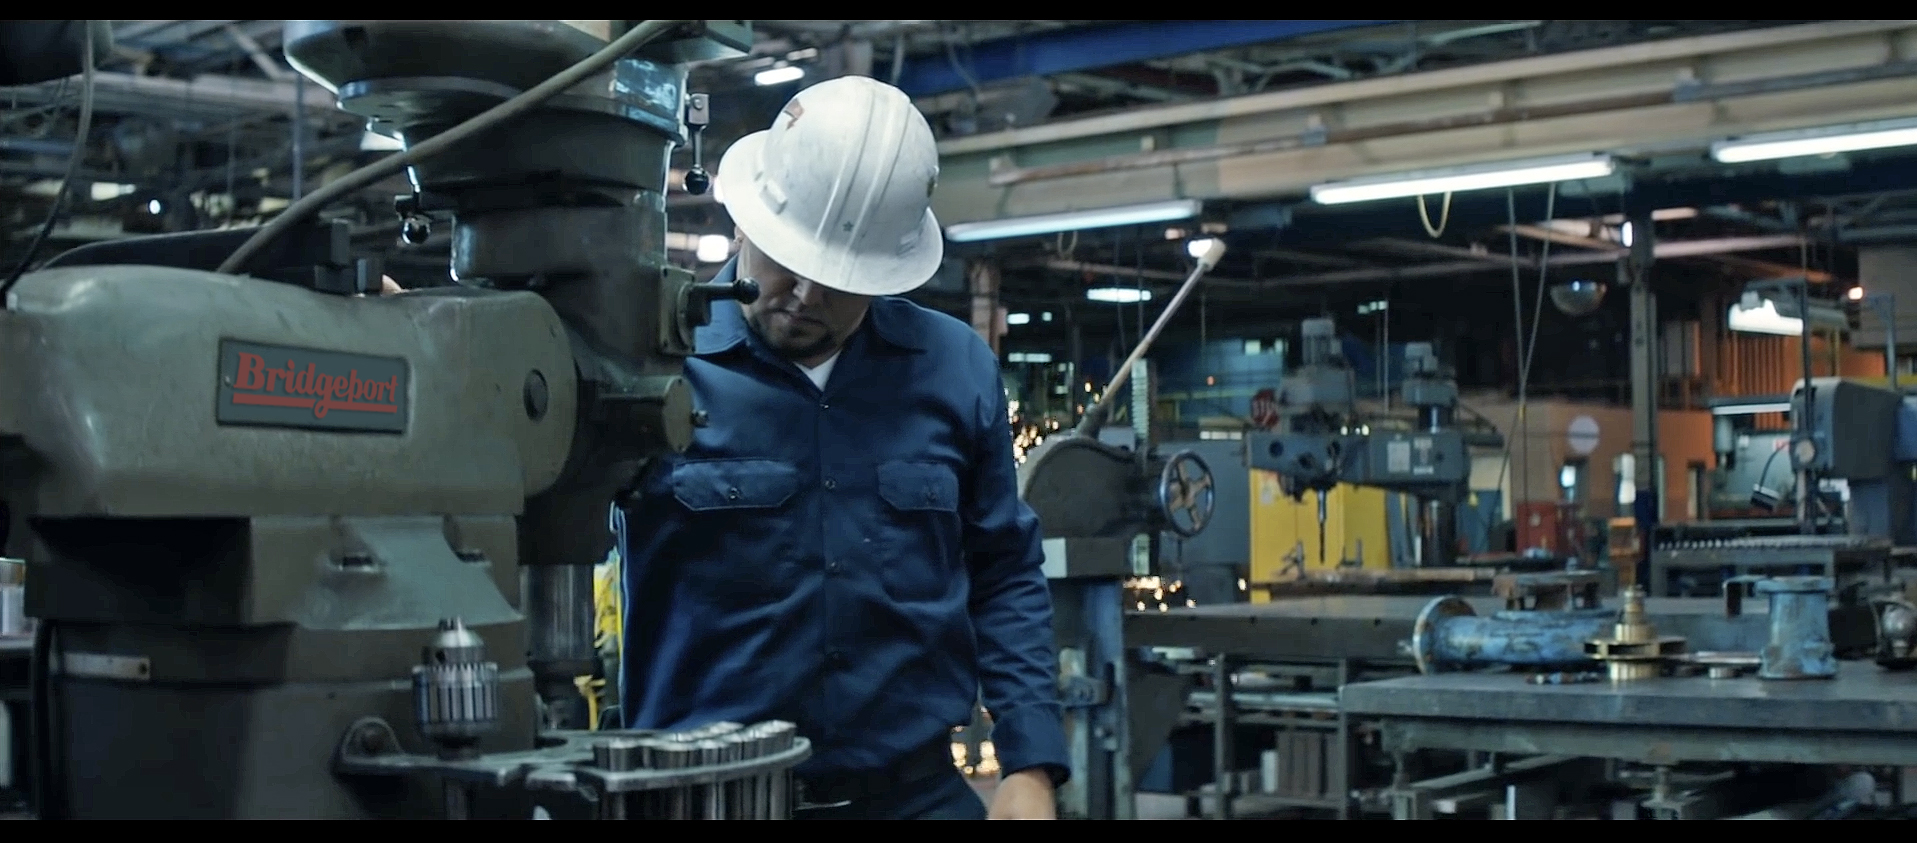 Bridgeport Knee Mill Gets Cameo in Music Video | The